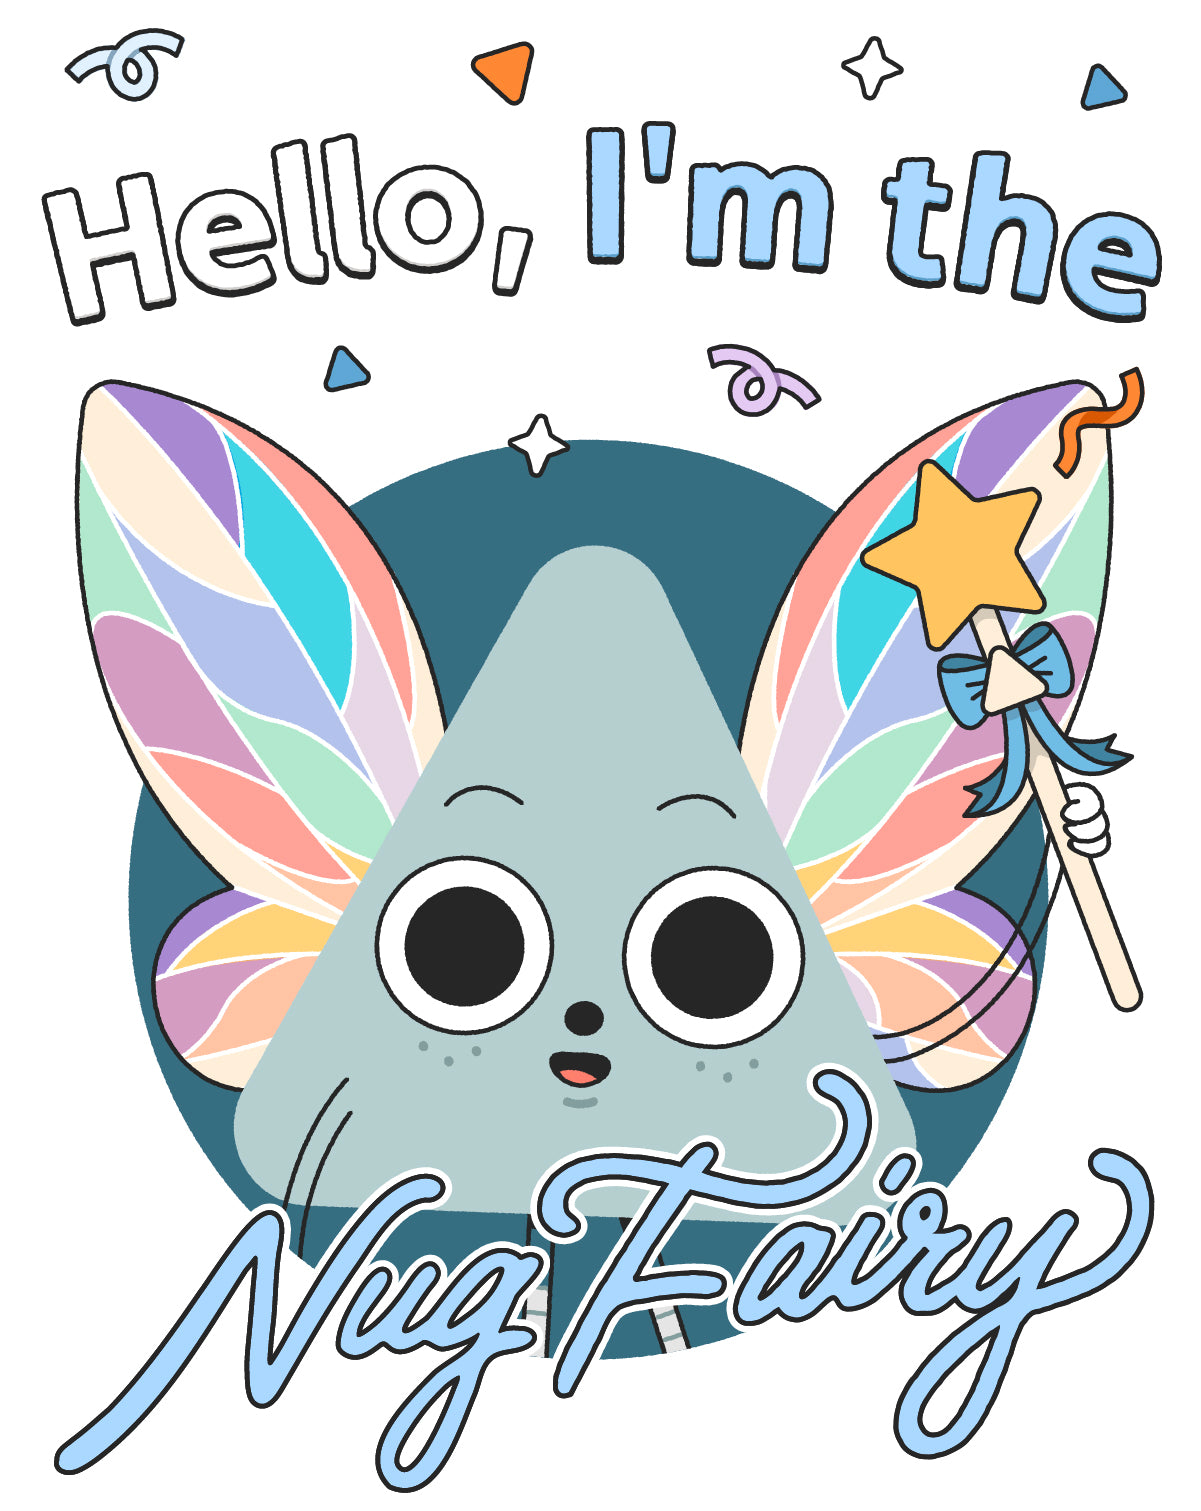 Hello, I'm the Nug Fairy! written over a cartoon character with a pale blue triangular body, colorful fairy wings, wide eyes and a little grin. They are carrying a wand in their left hand.